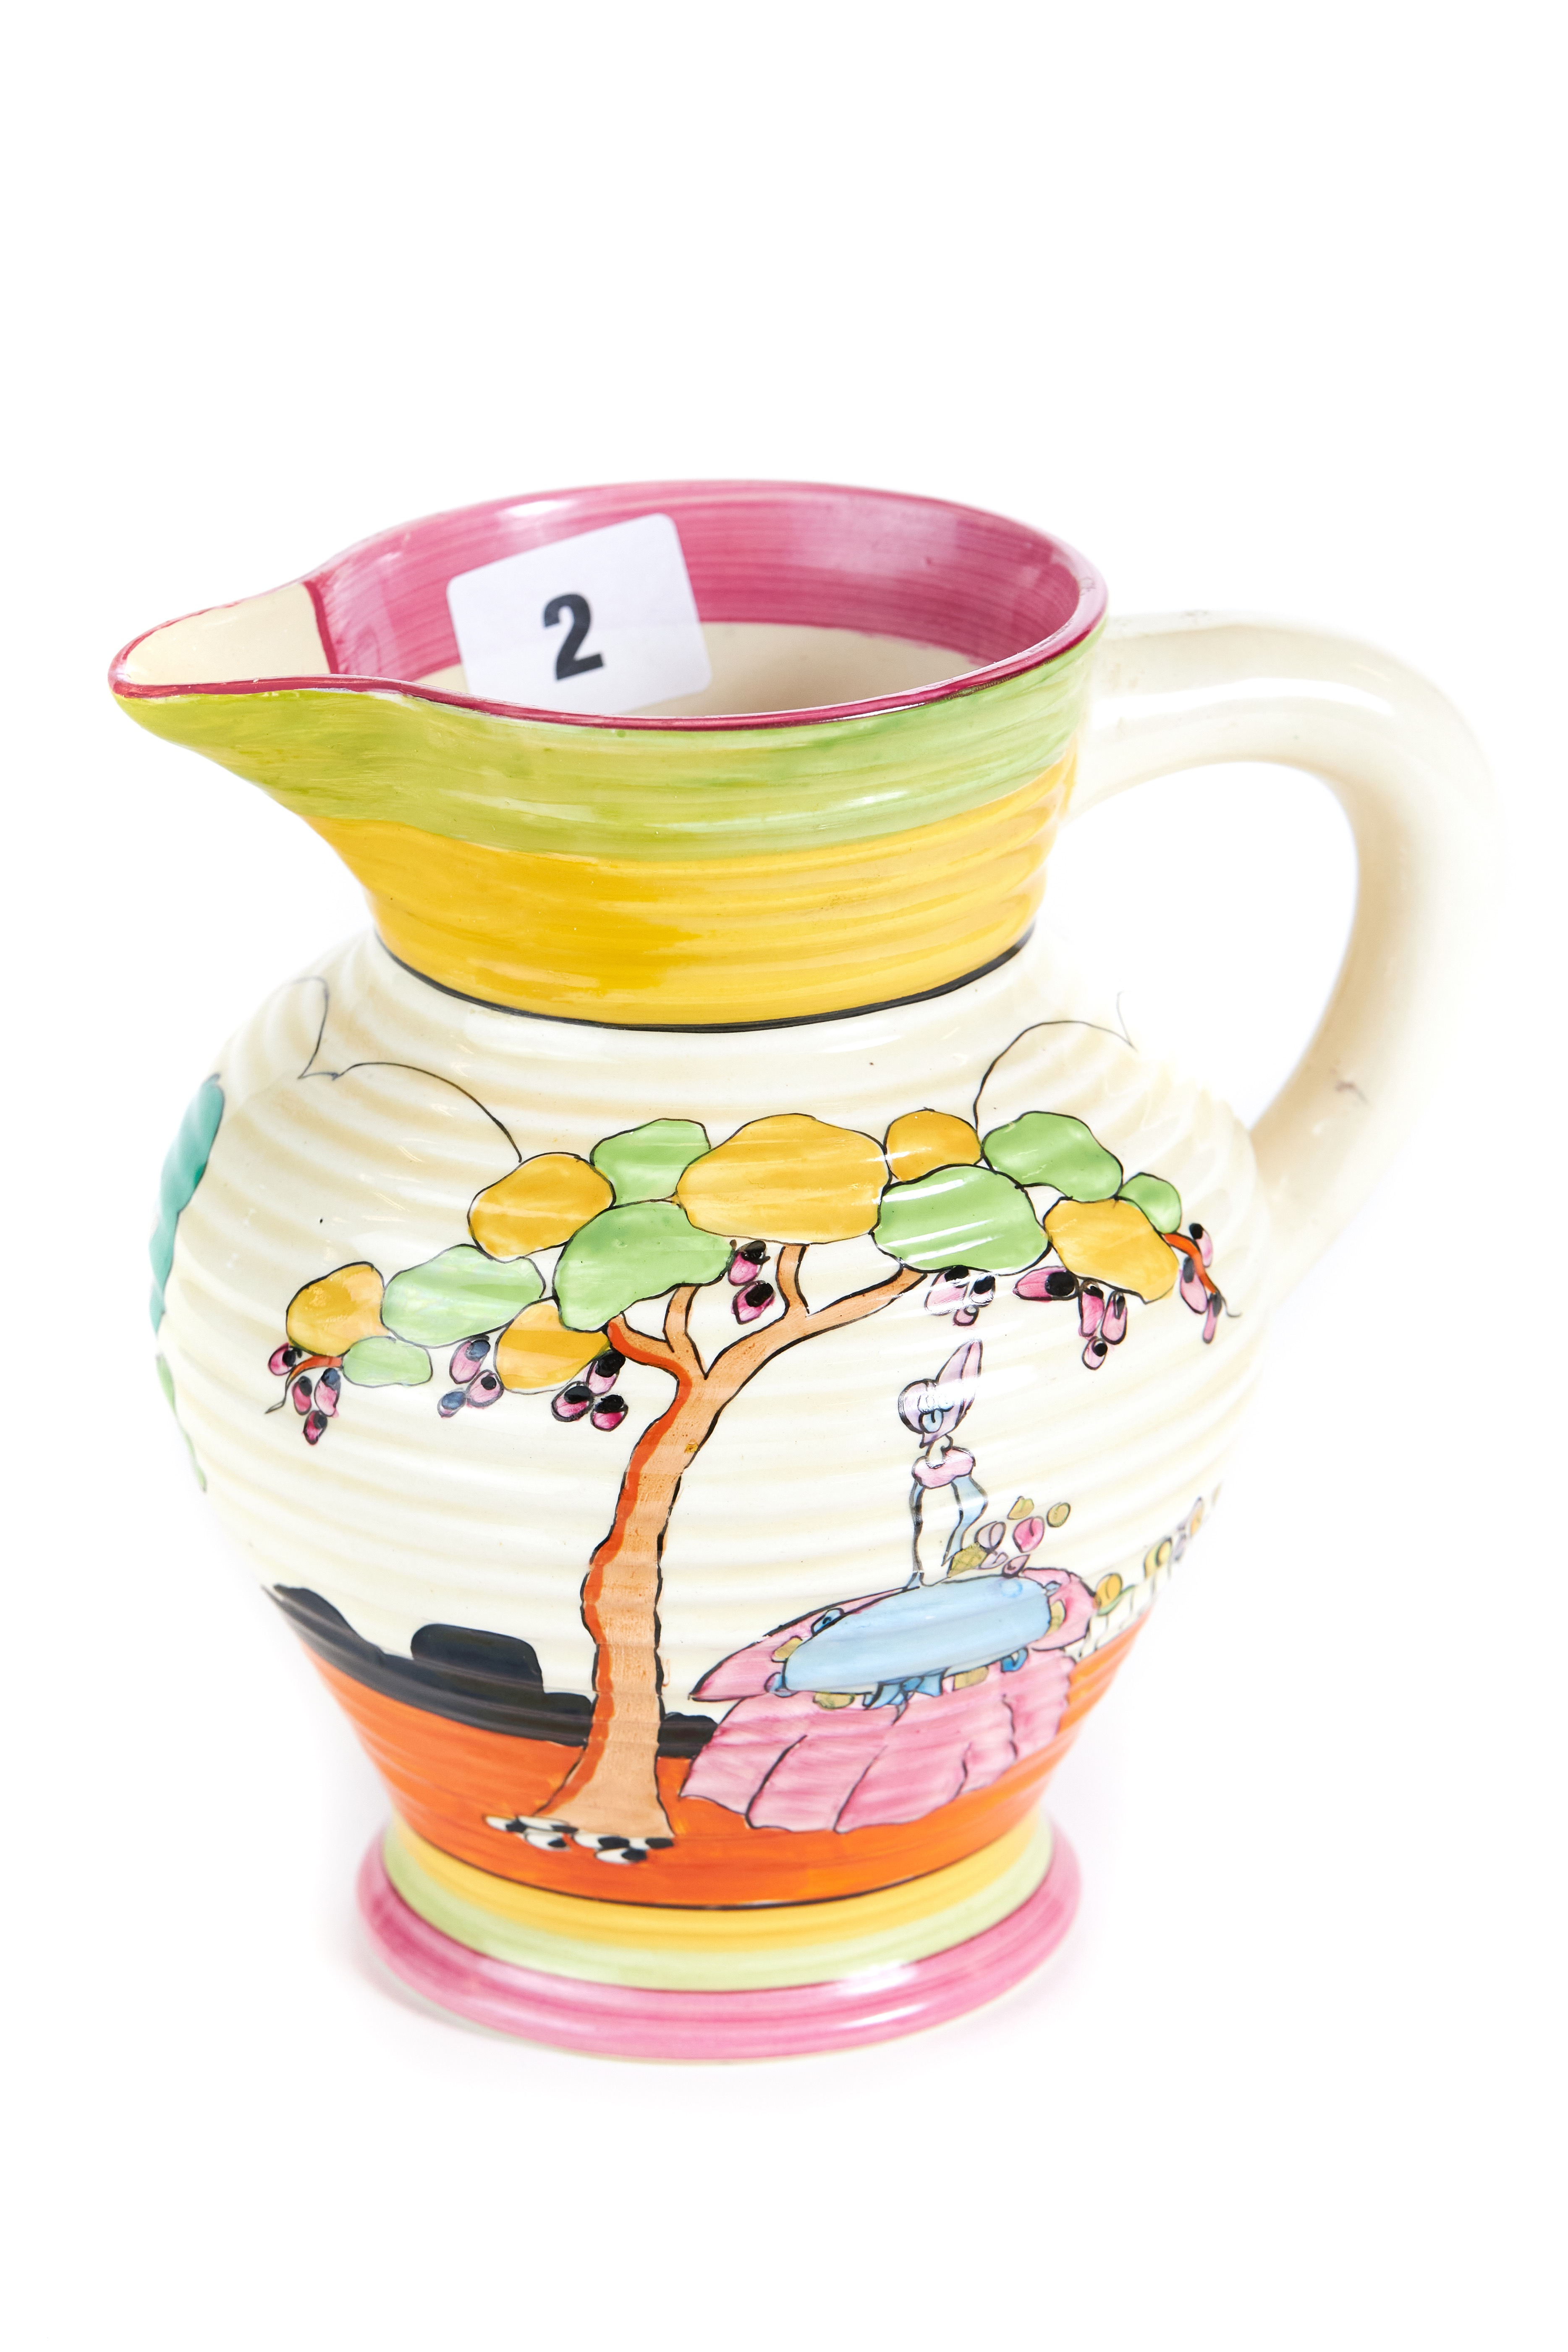 A 20TH CENTURY CLARICE CLIFF NEWPORT POTTERY JUG hand painted with a crinoline lady in a garden